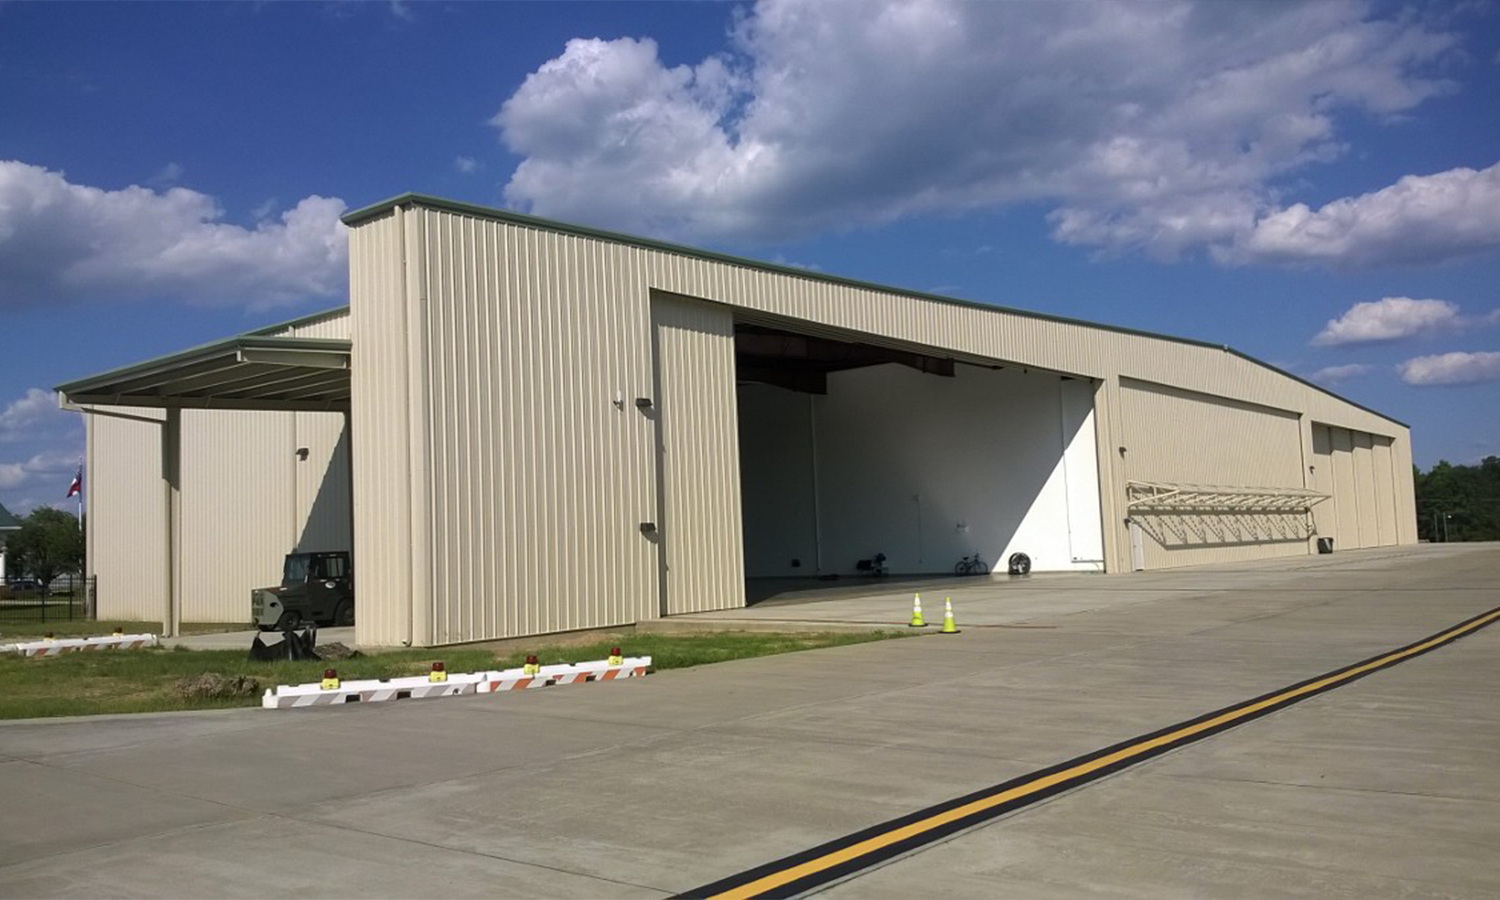 Outside View of Hangar